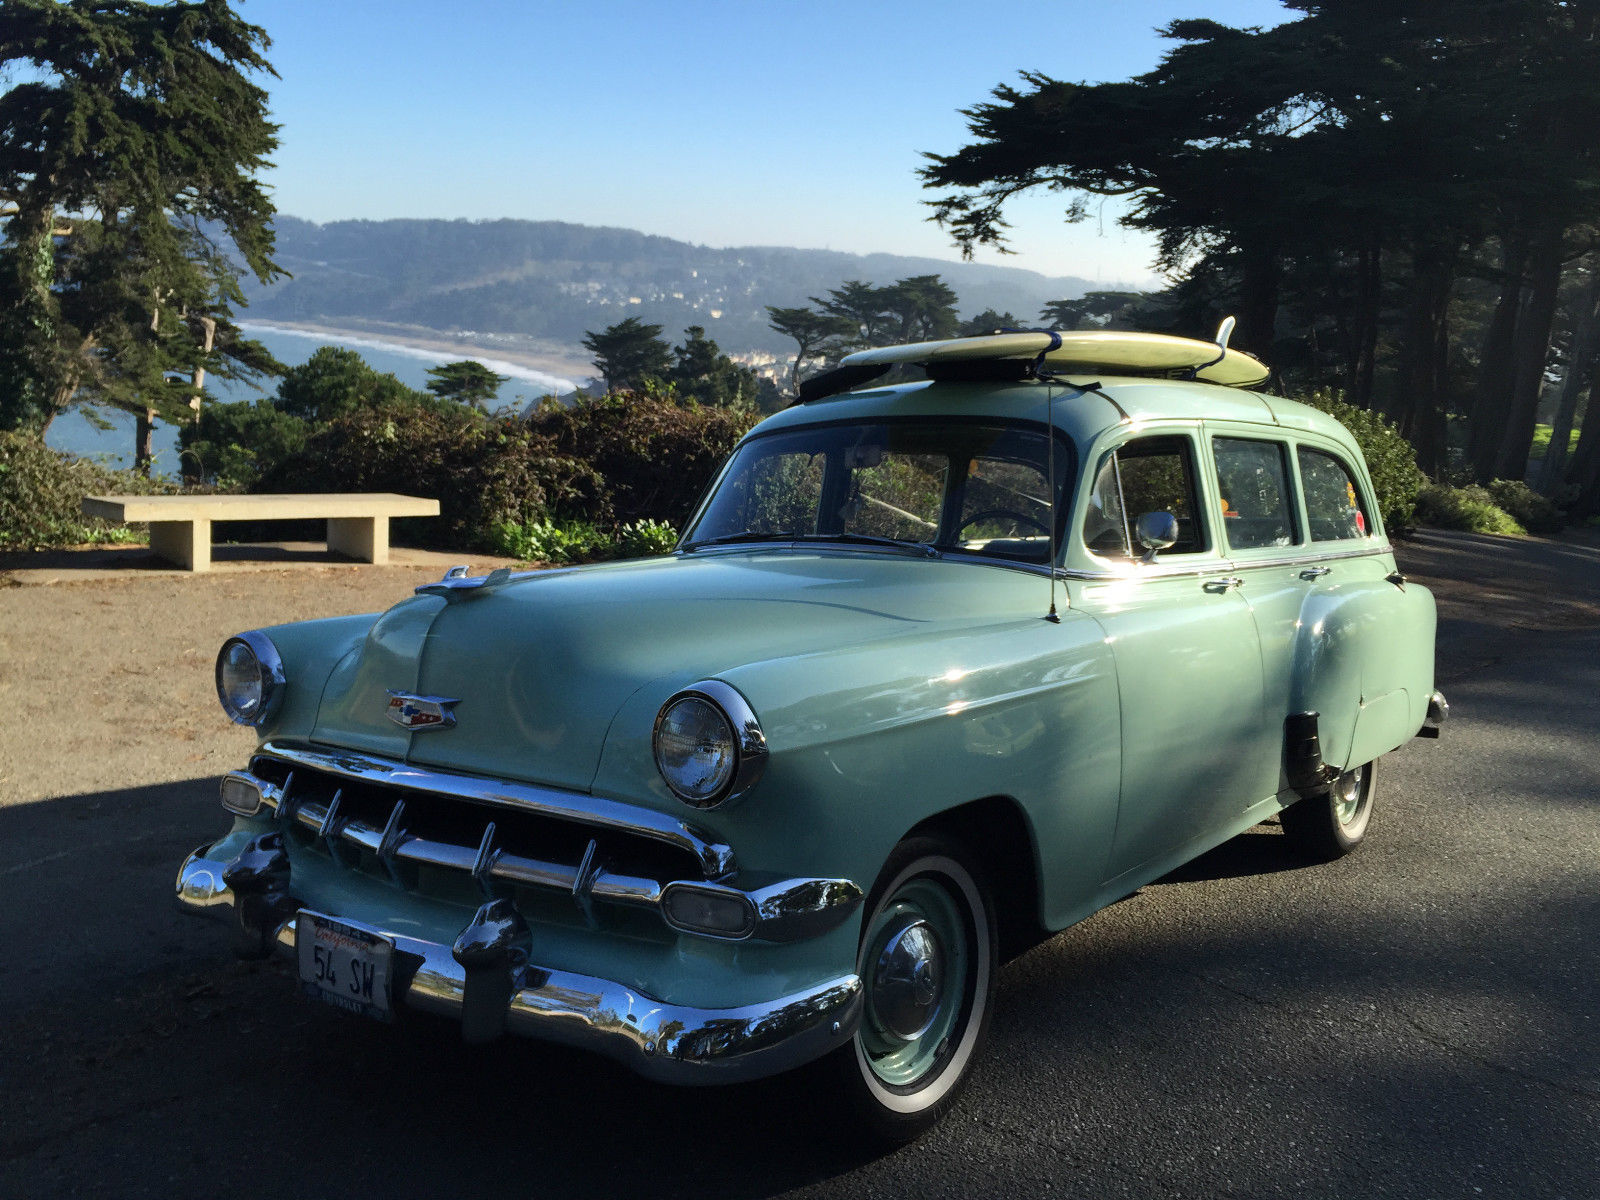 surfwagon 1954 chevy station wagon for sale in san francisco california united states. Black Bedroom Furniture Sets. Home Design Ideas